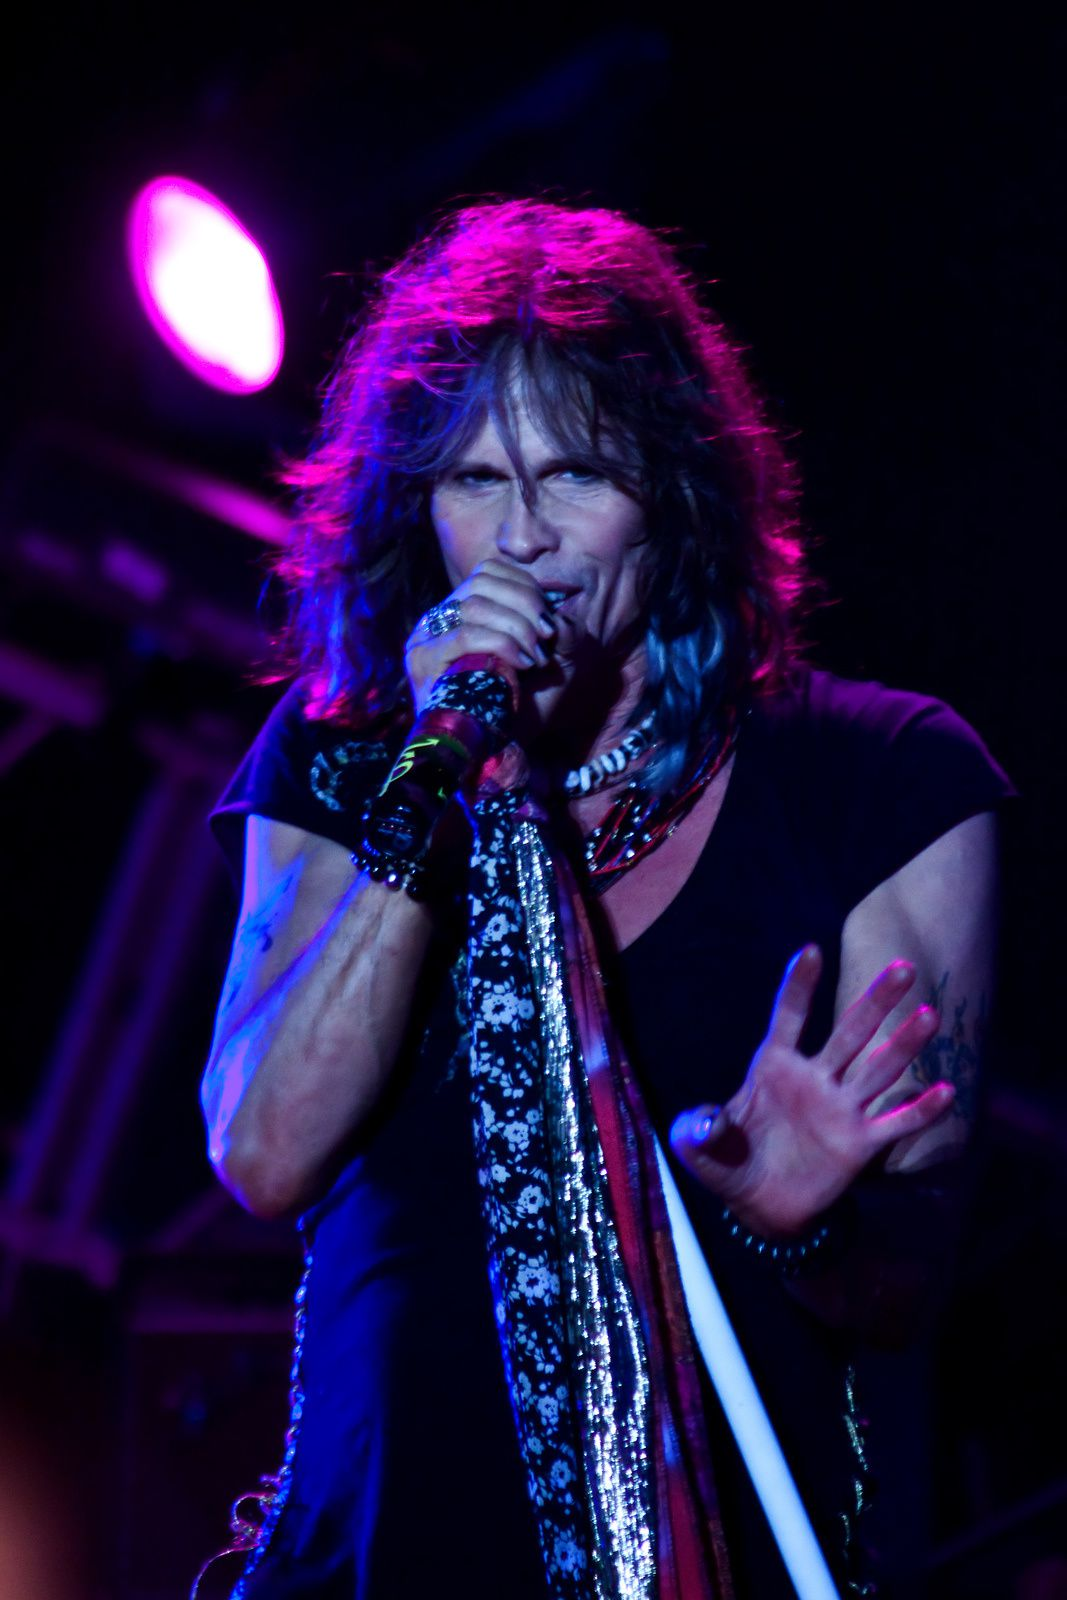 Steven Tyler - 2009, October 15 - San Francisco, California, US